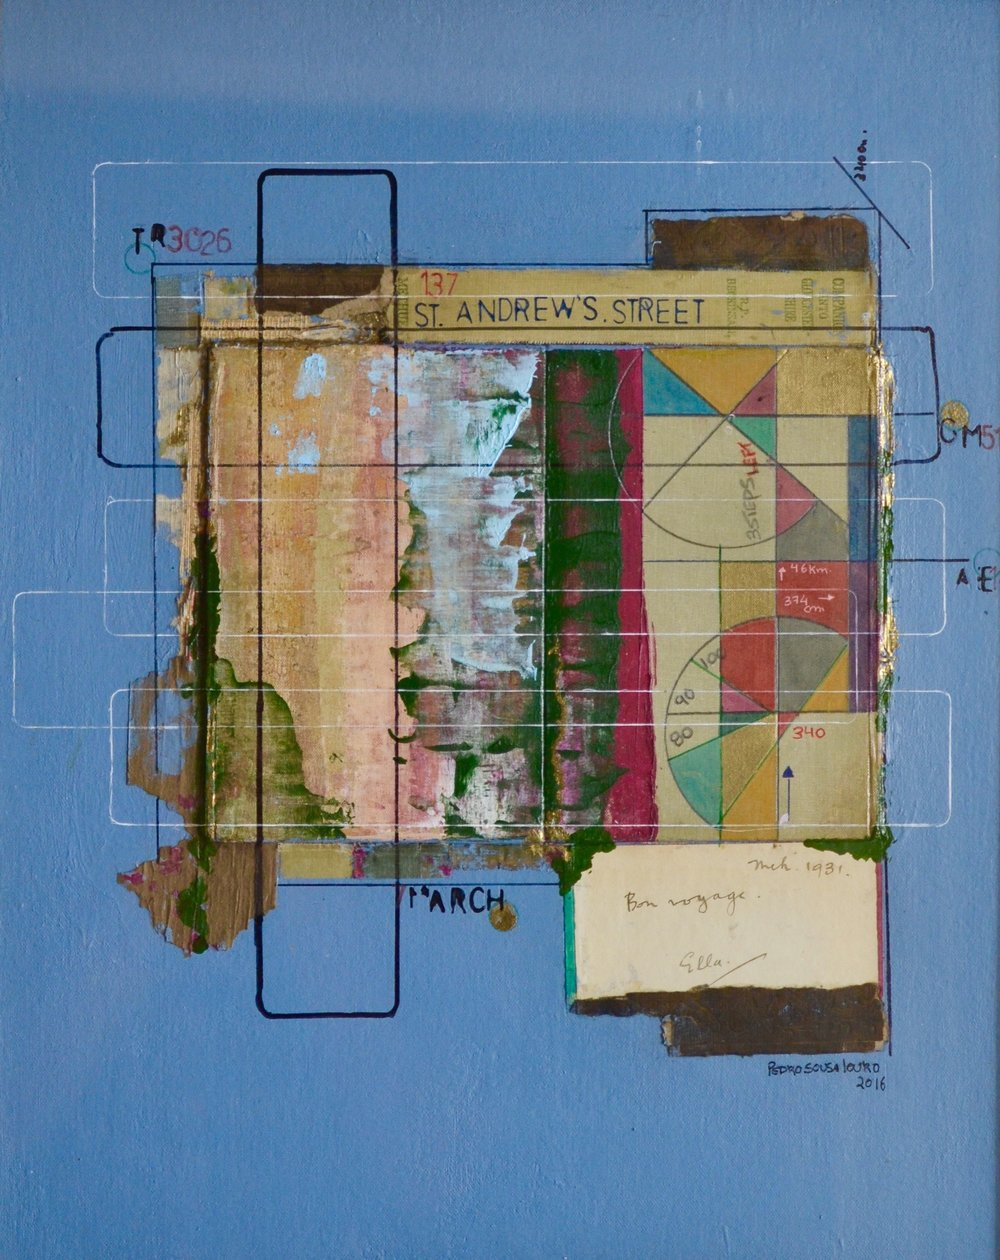 Pedo Sousa Louro    Bon Voyage, 2016. Mixed media and collage with an old book from1931 on canvas board. 32 x 42cm. £650.00 (framed)